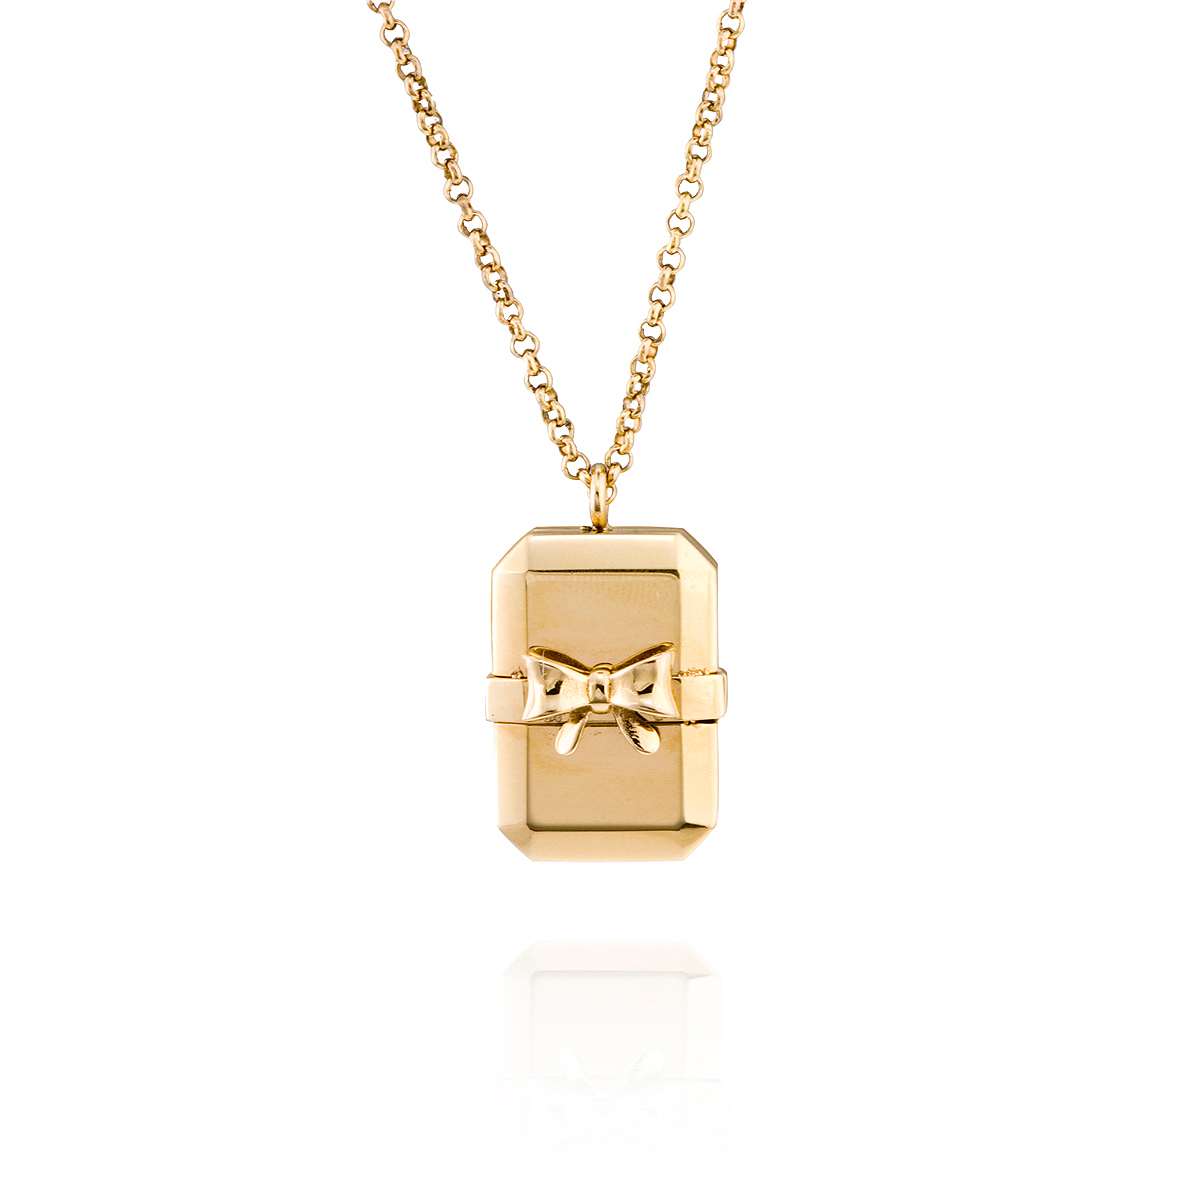 Molly-charity-necklace-gold